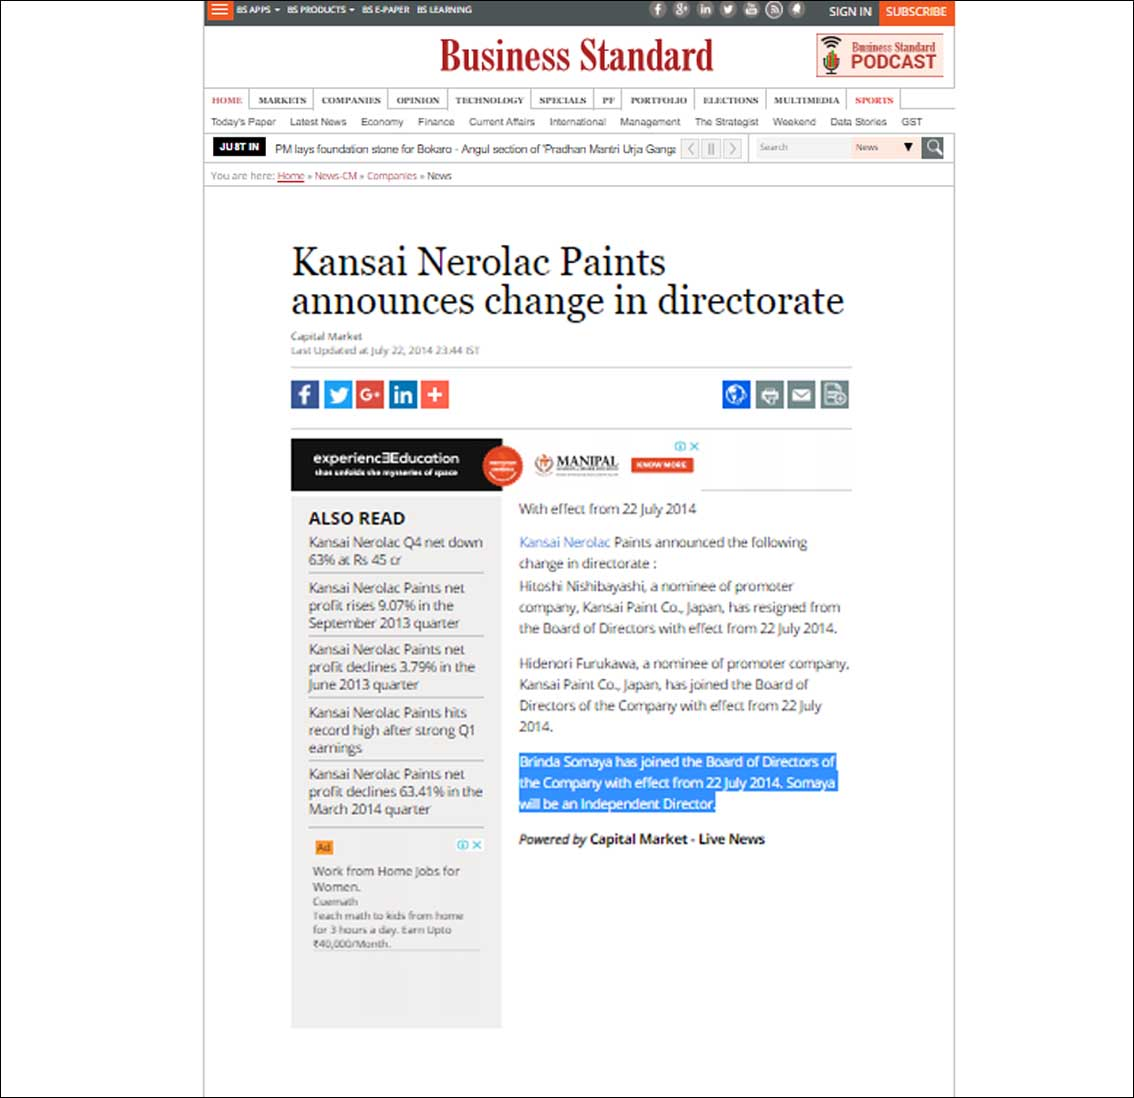 Kanasi Nerolac Paints announces change in directorate, Business standard - July 2014